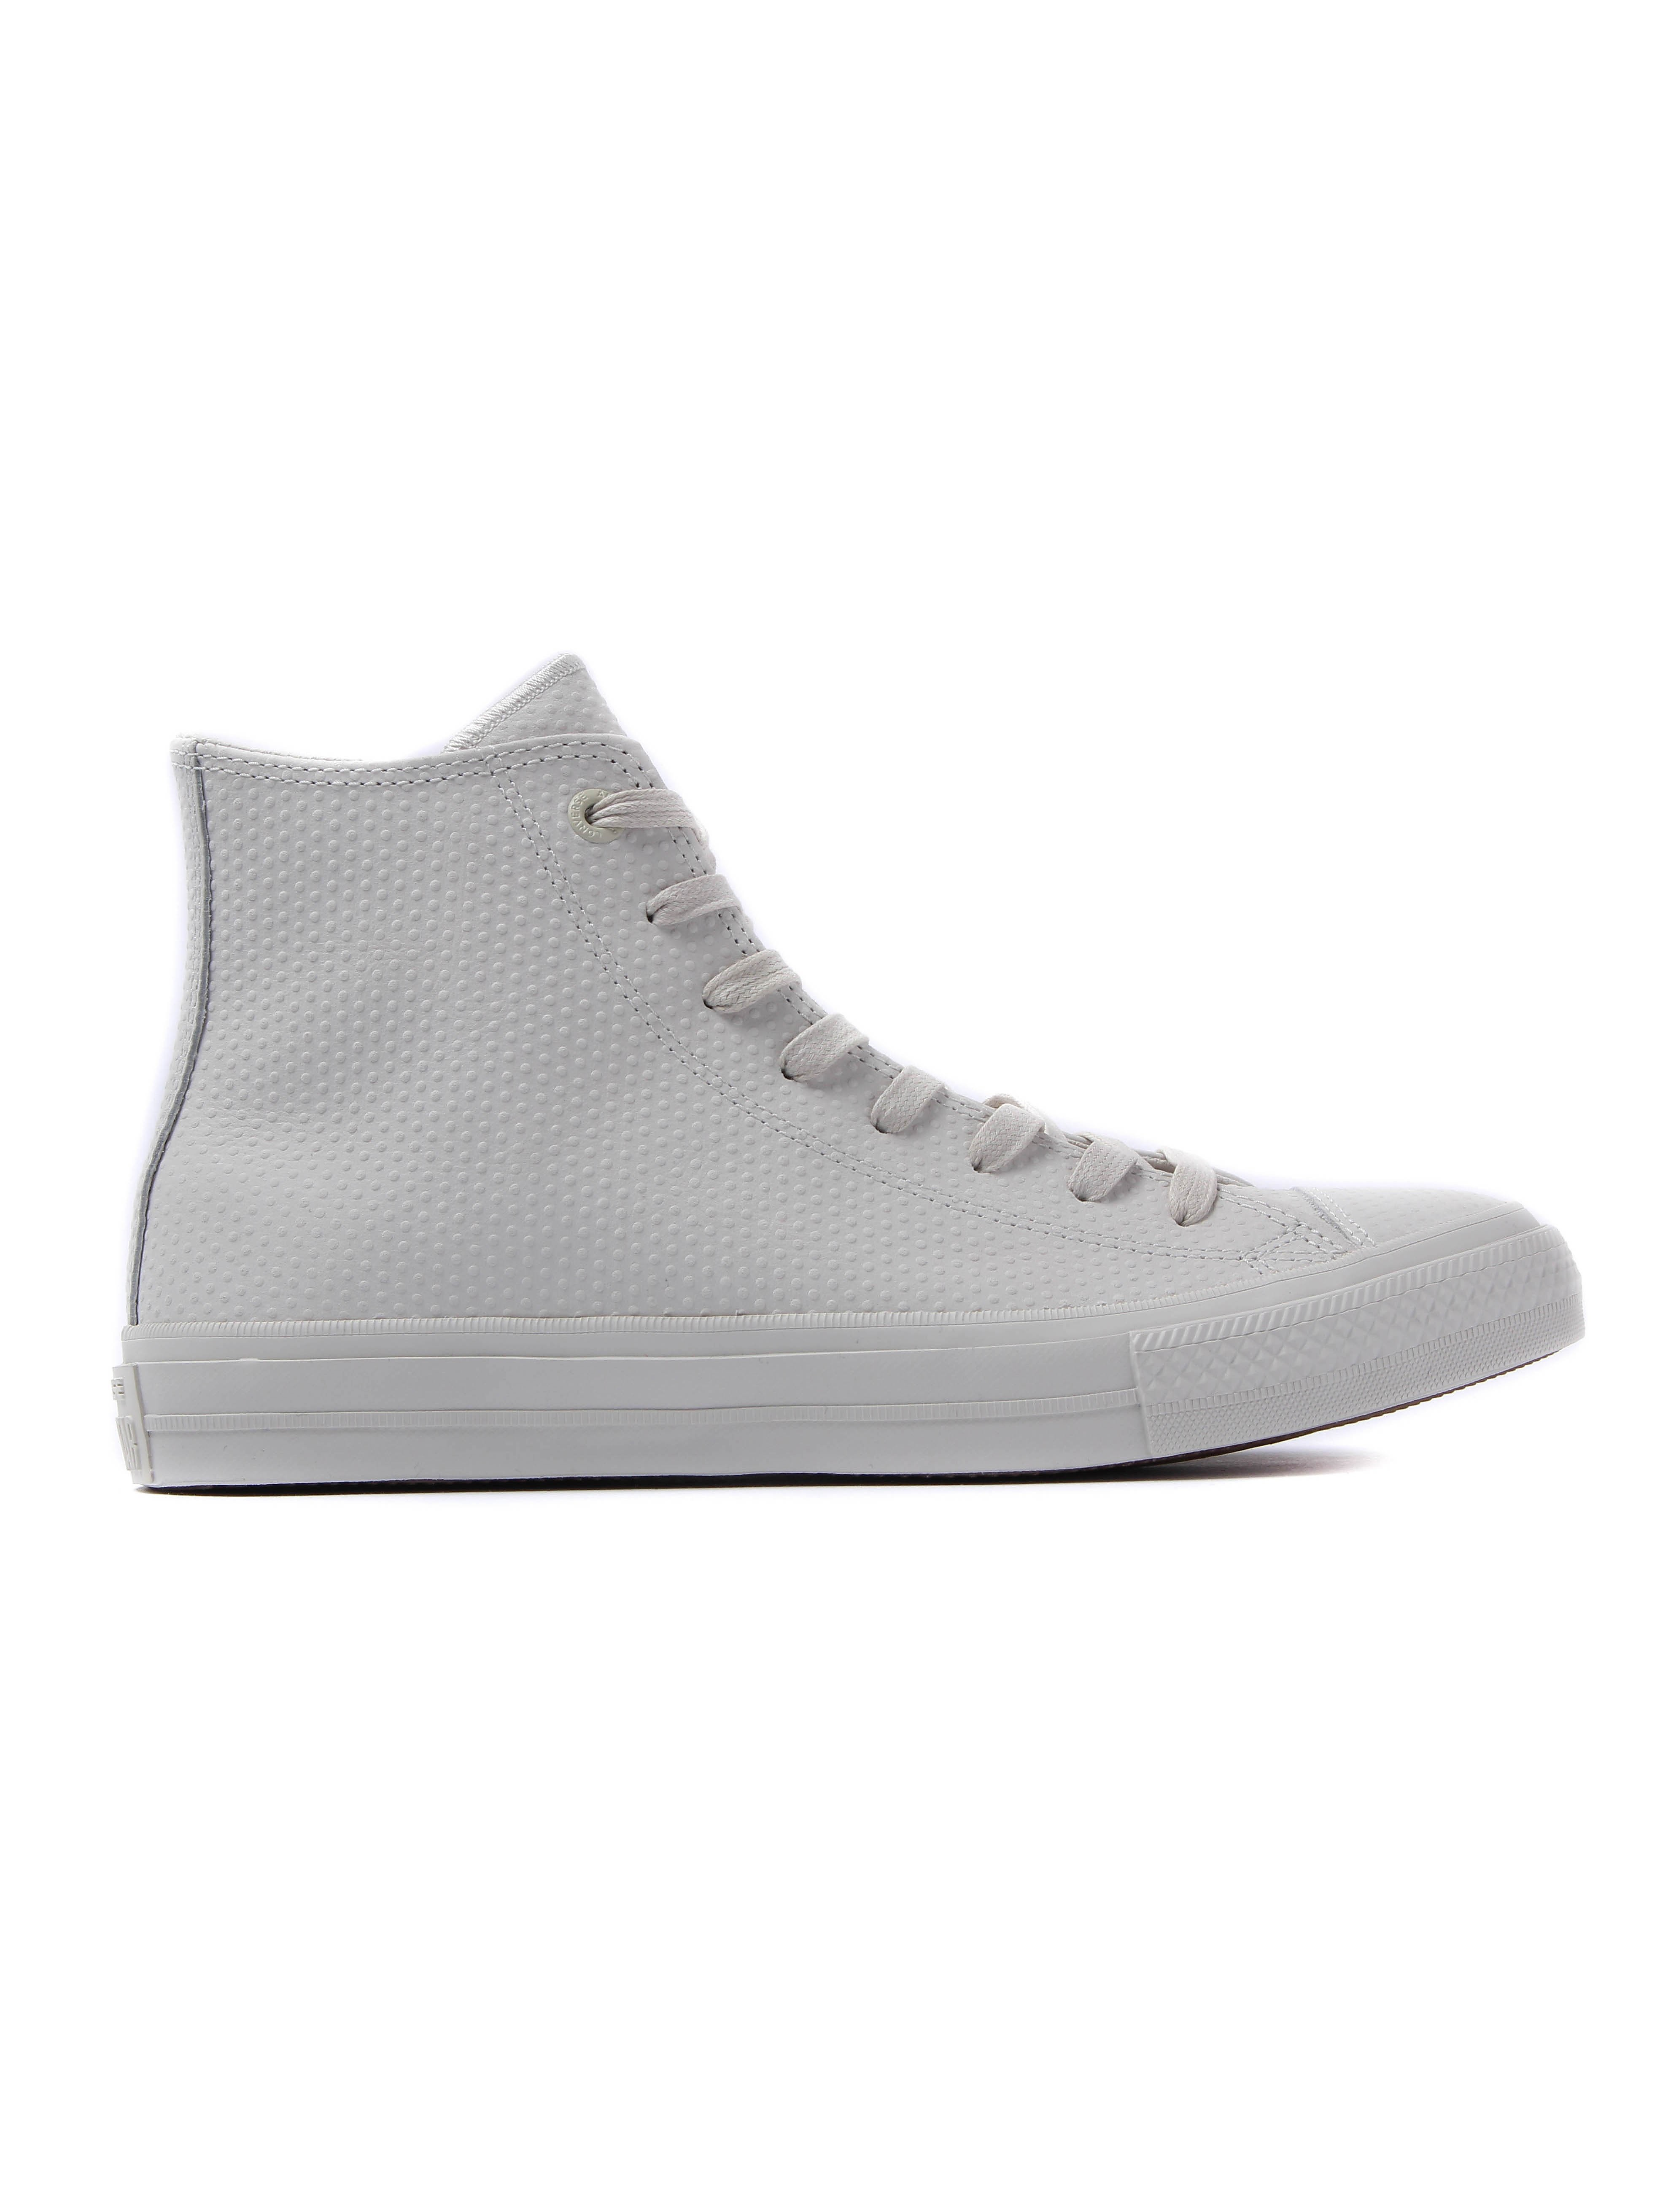 Converse Men's Chuck Taylor All Star II High Top Leather Trainers - Buff White